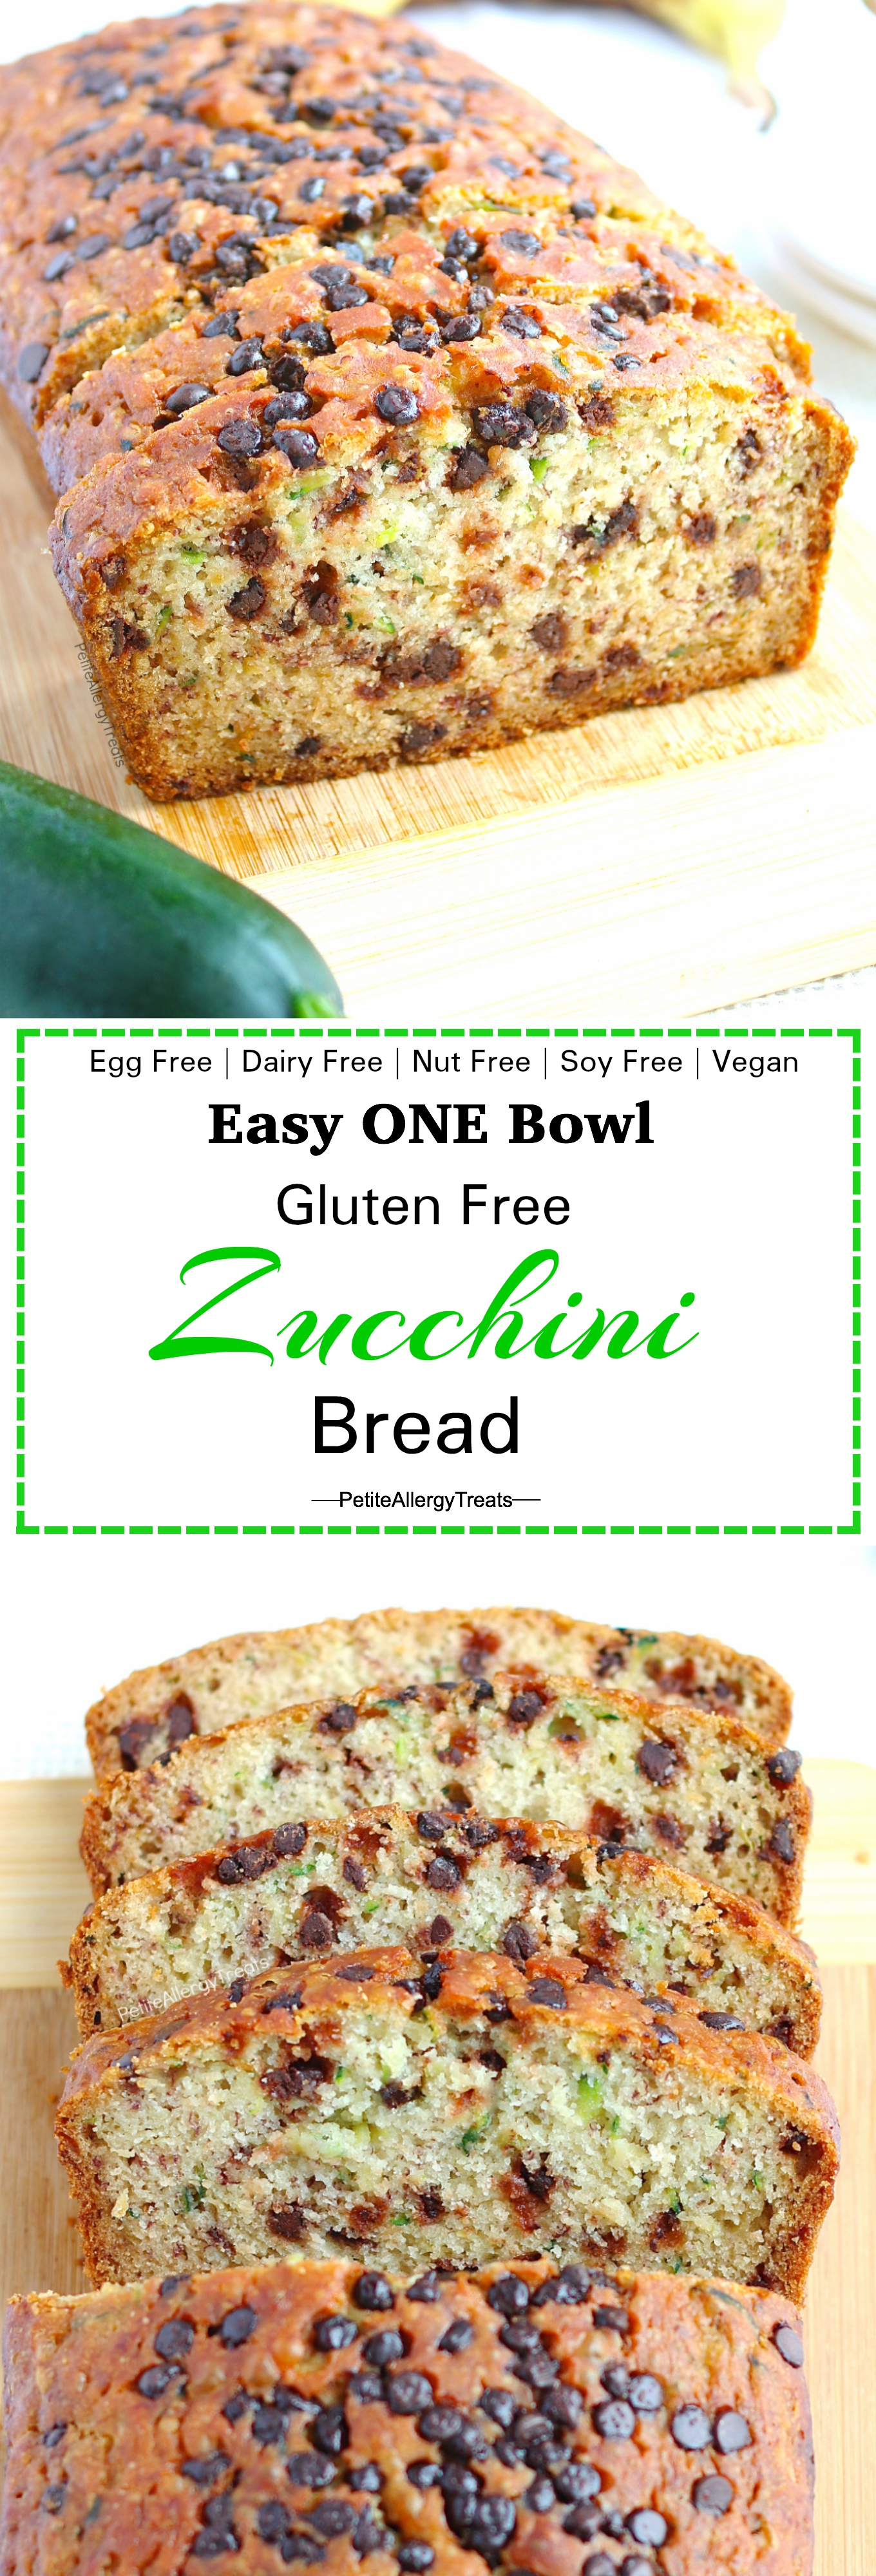 Egg Free Gluten Free Zucchini Bread Recipe (egg free dairy free Vegan)- Easy one bowl gluten free chocolate chip zucchini bread. #glutenfree, #dairyfree, #eggfree, #vegan, #foodallergies